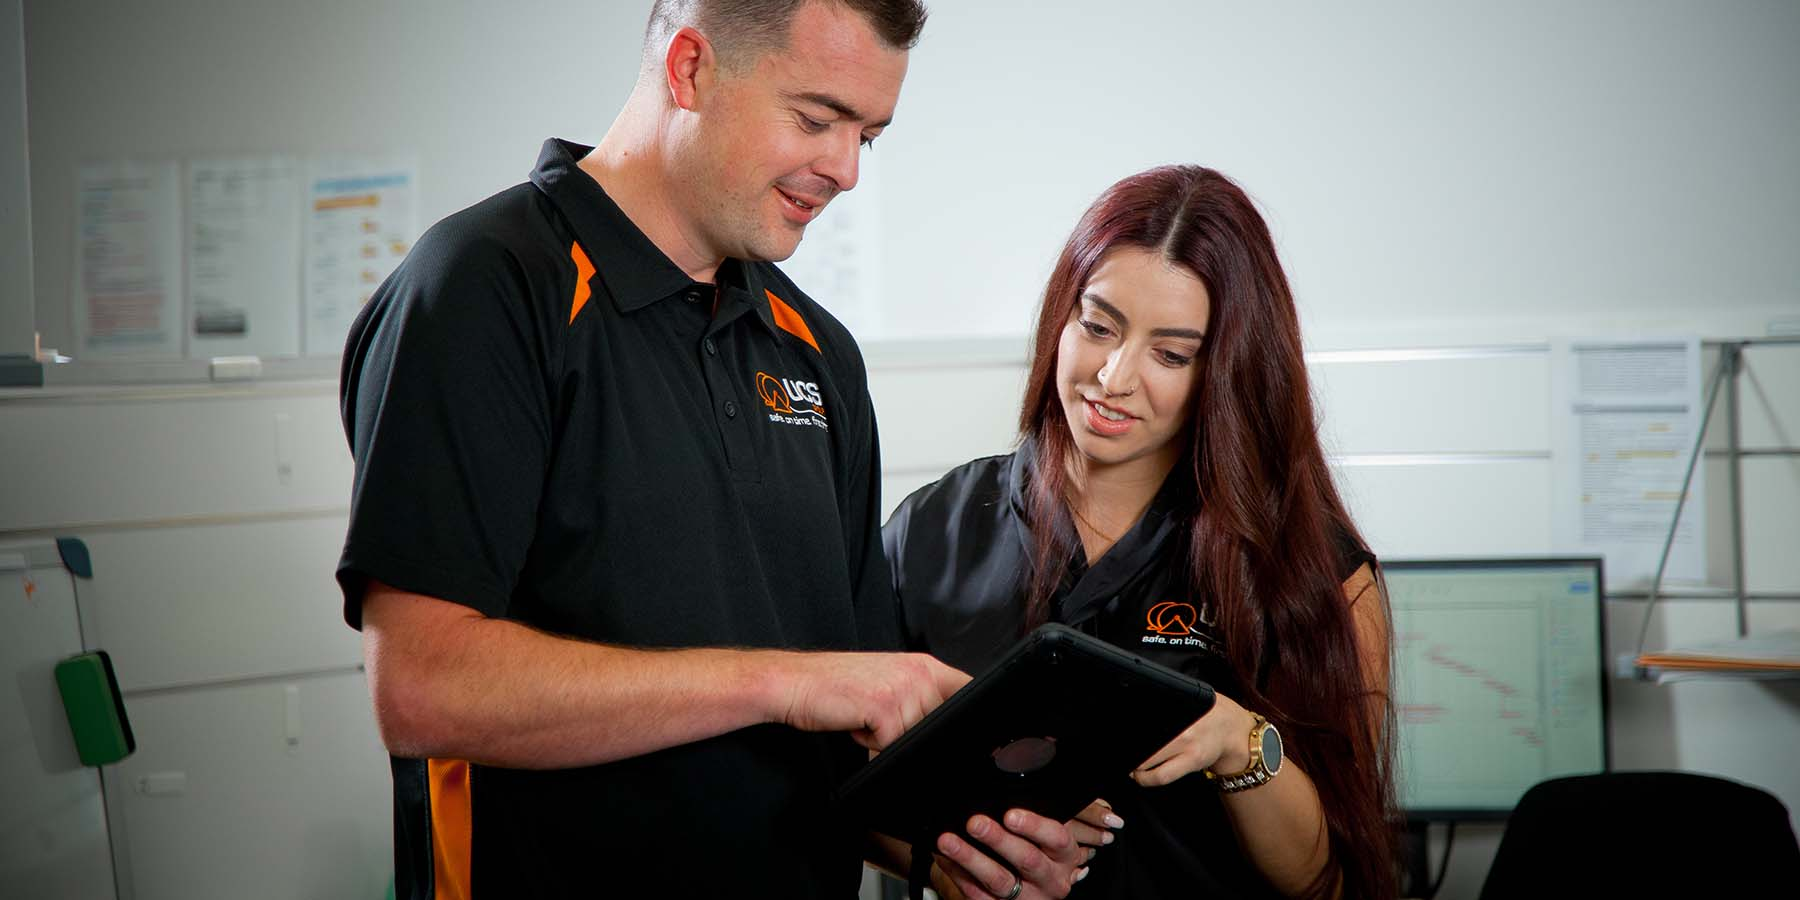 UCS man & woman looking at tablet